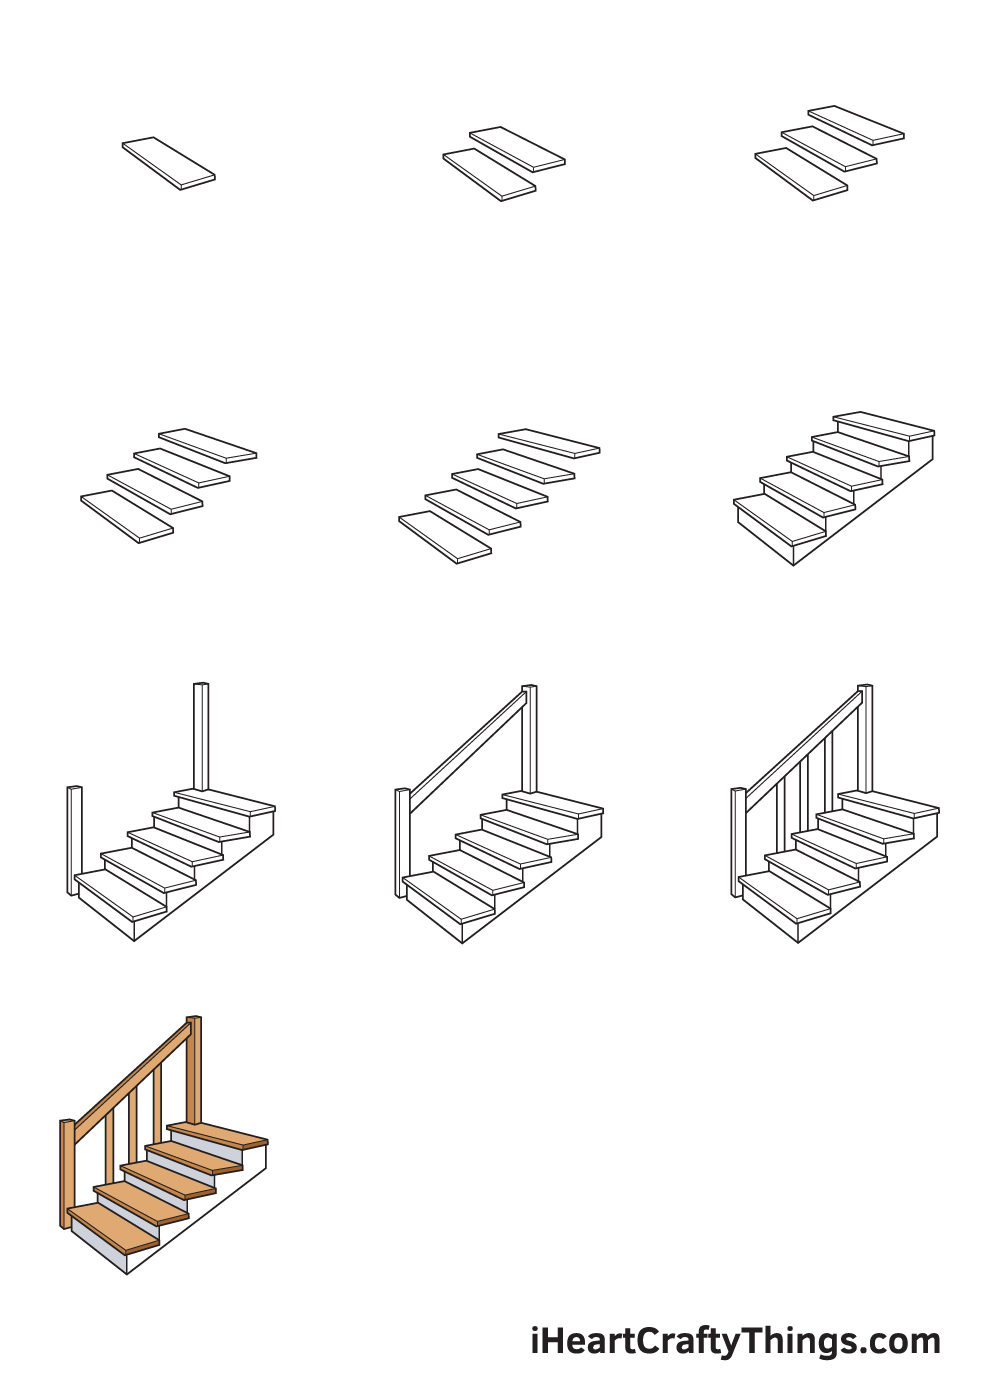 drawing stairs in 9 steps